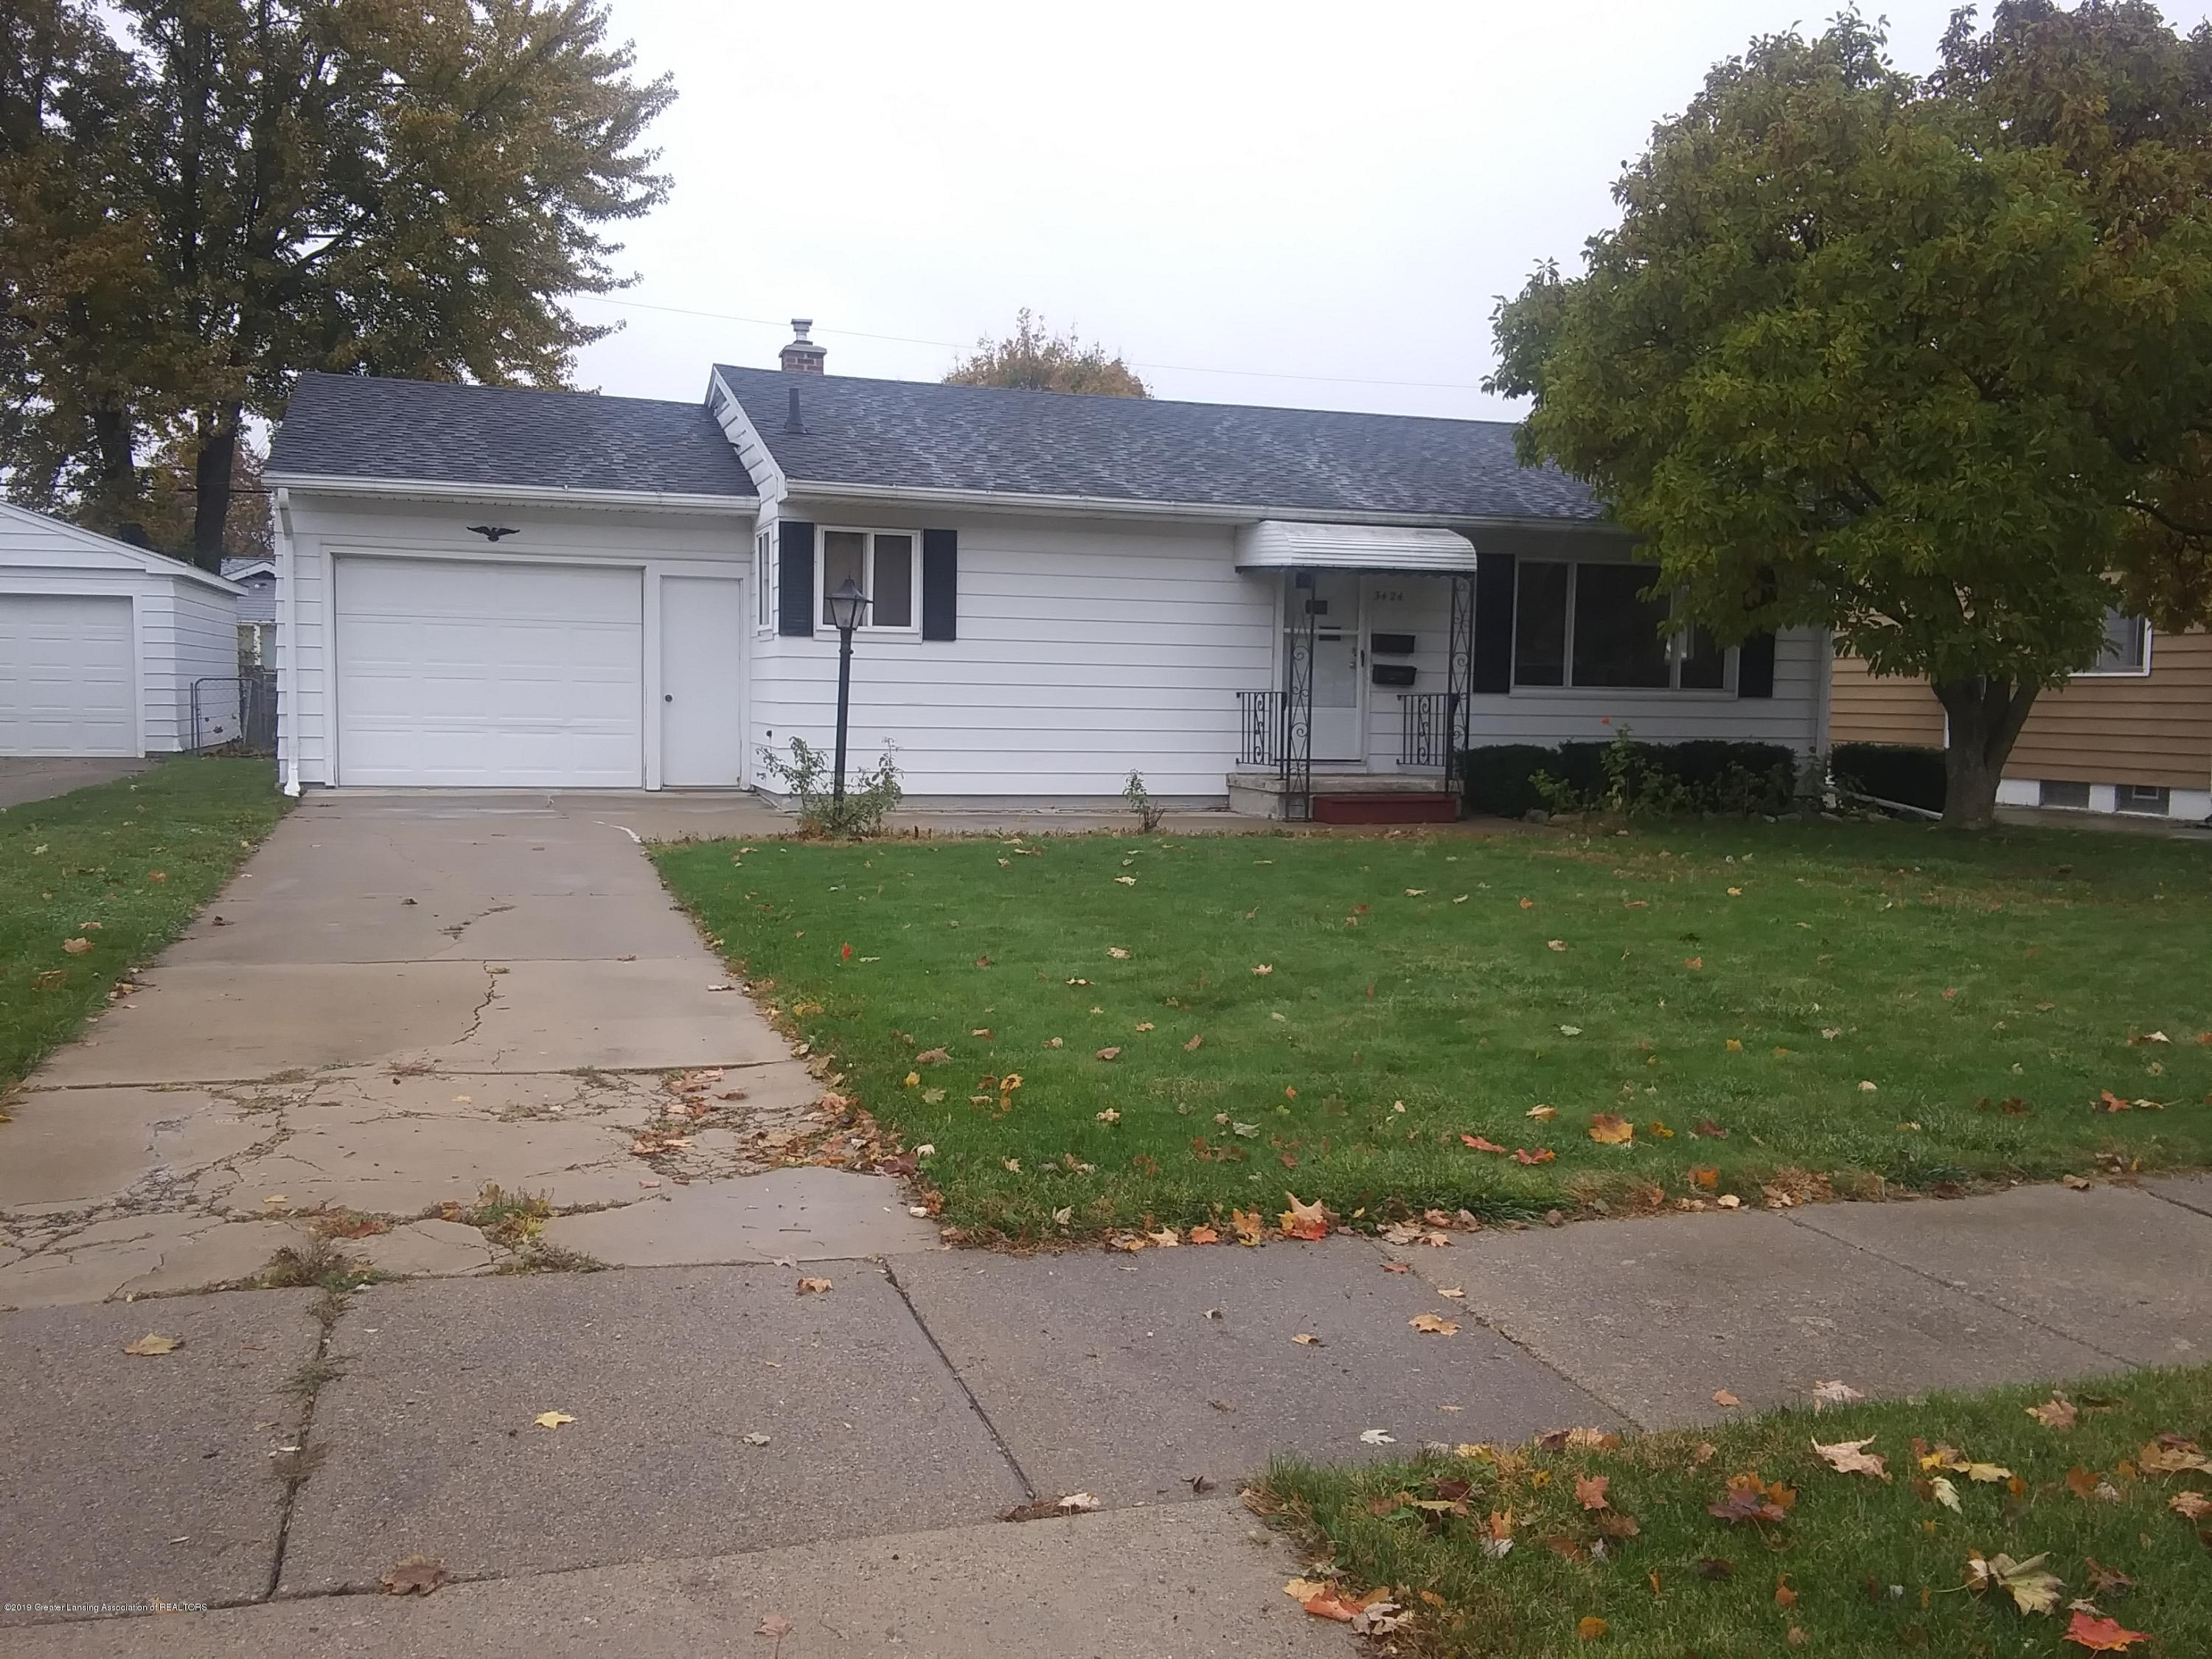 3424 W Willow St - 20191029_112103 - 2